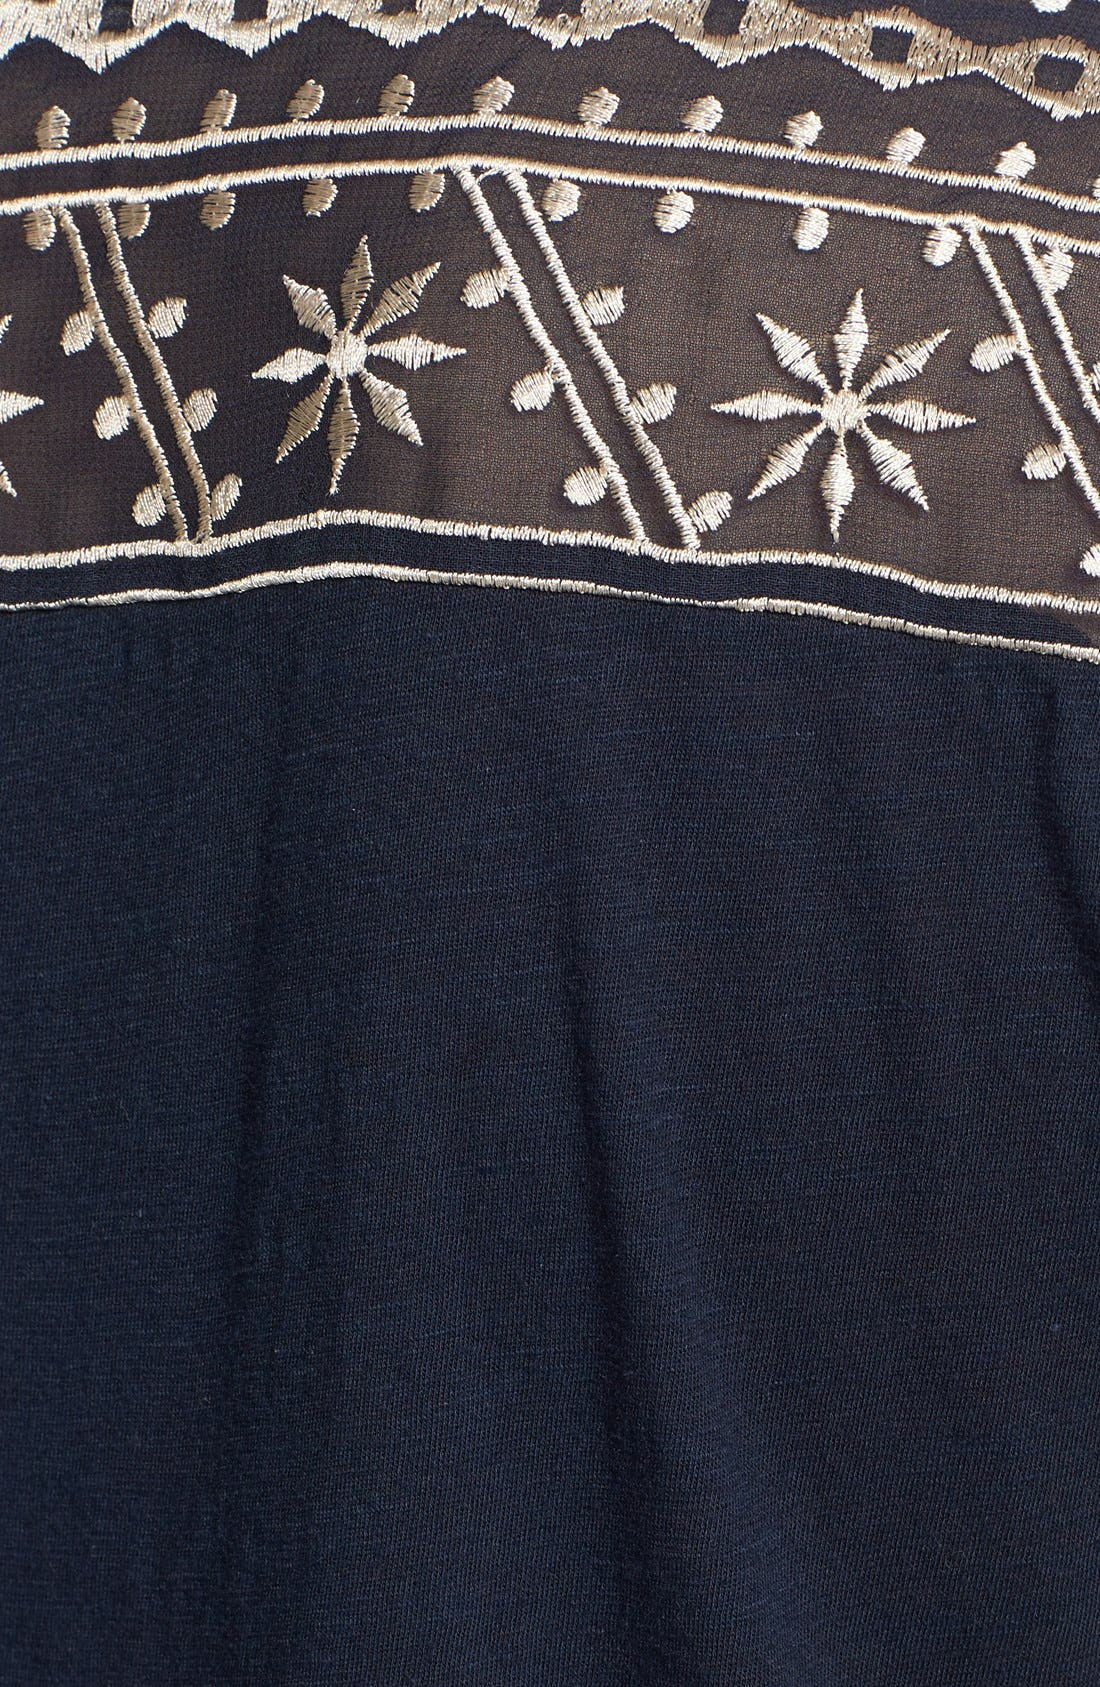 Alternate Image 3  - Lucky Brand 'Kiana' Embroidered Tunic Top